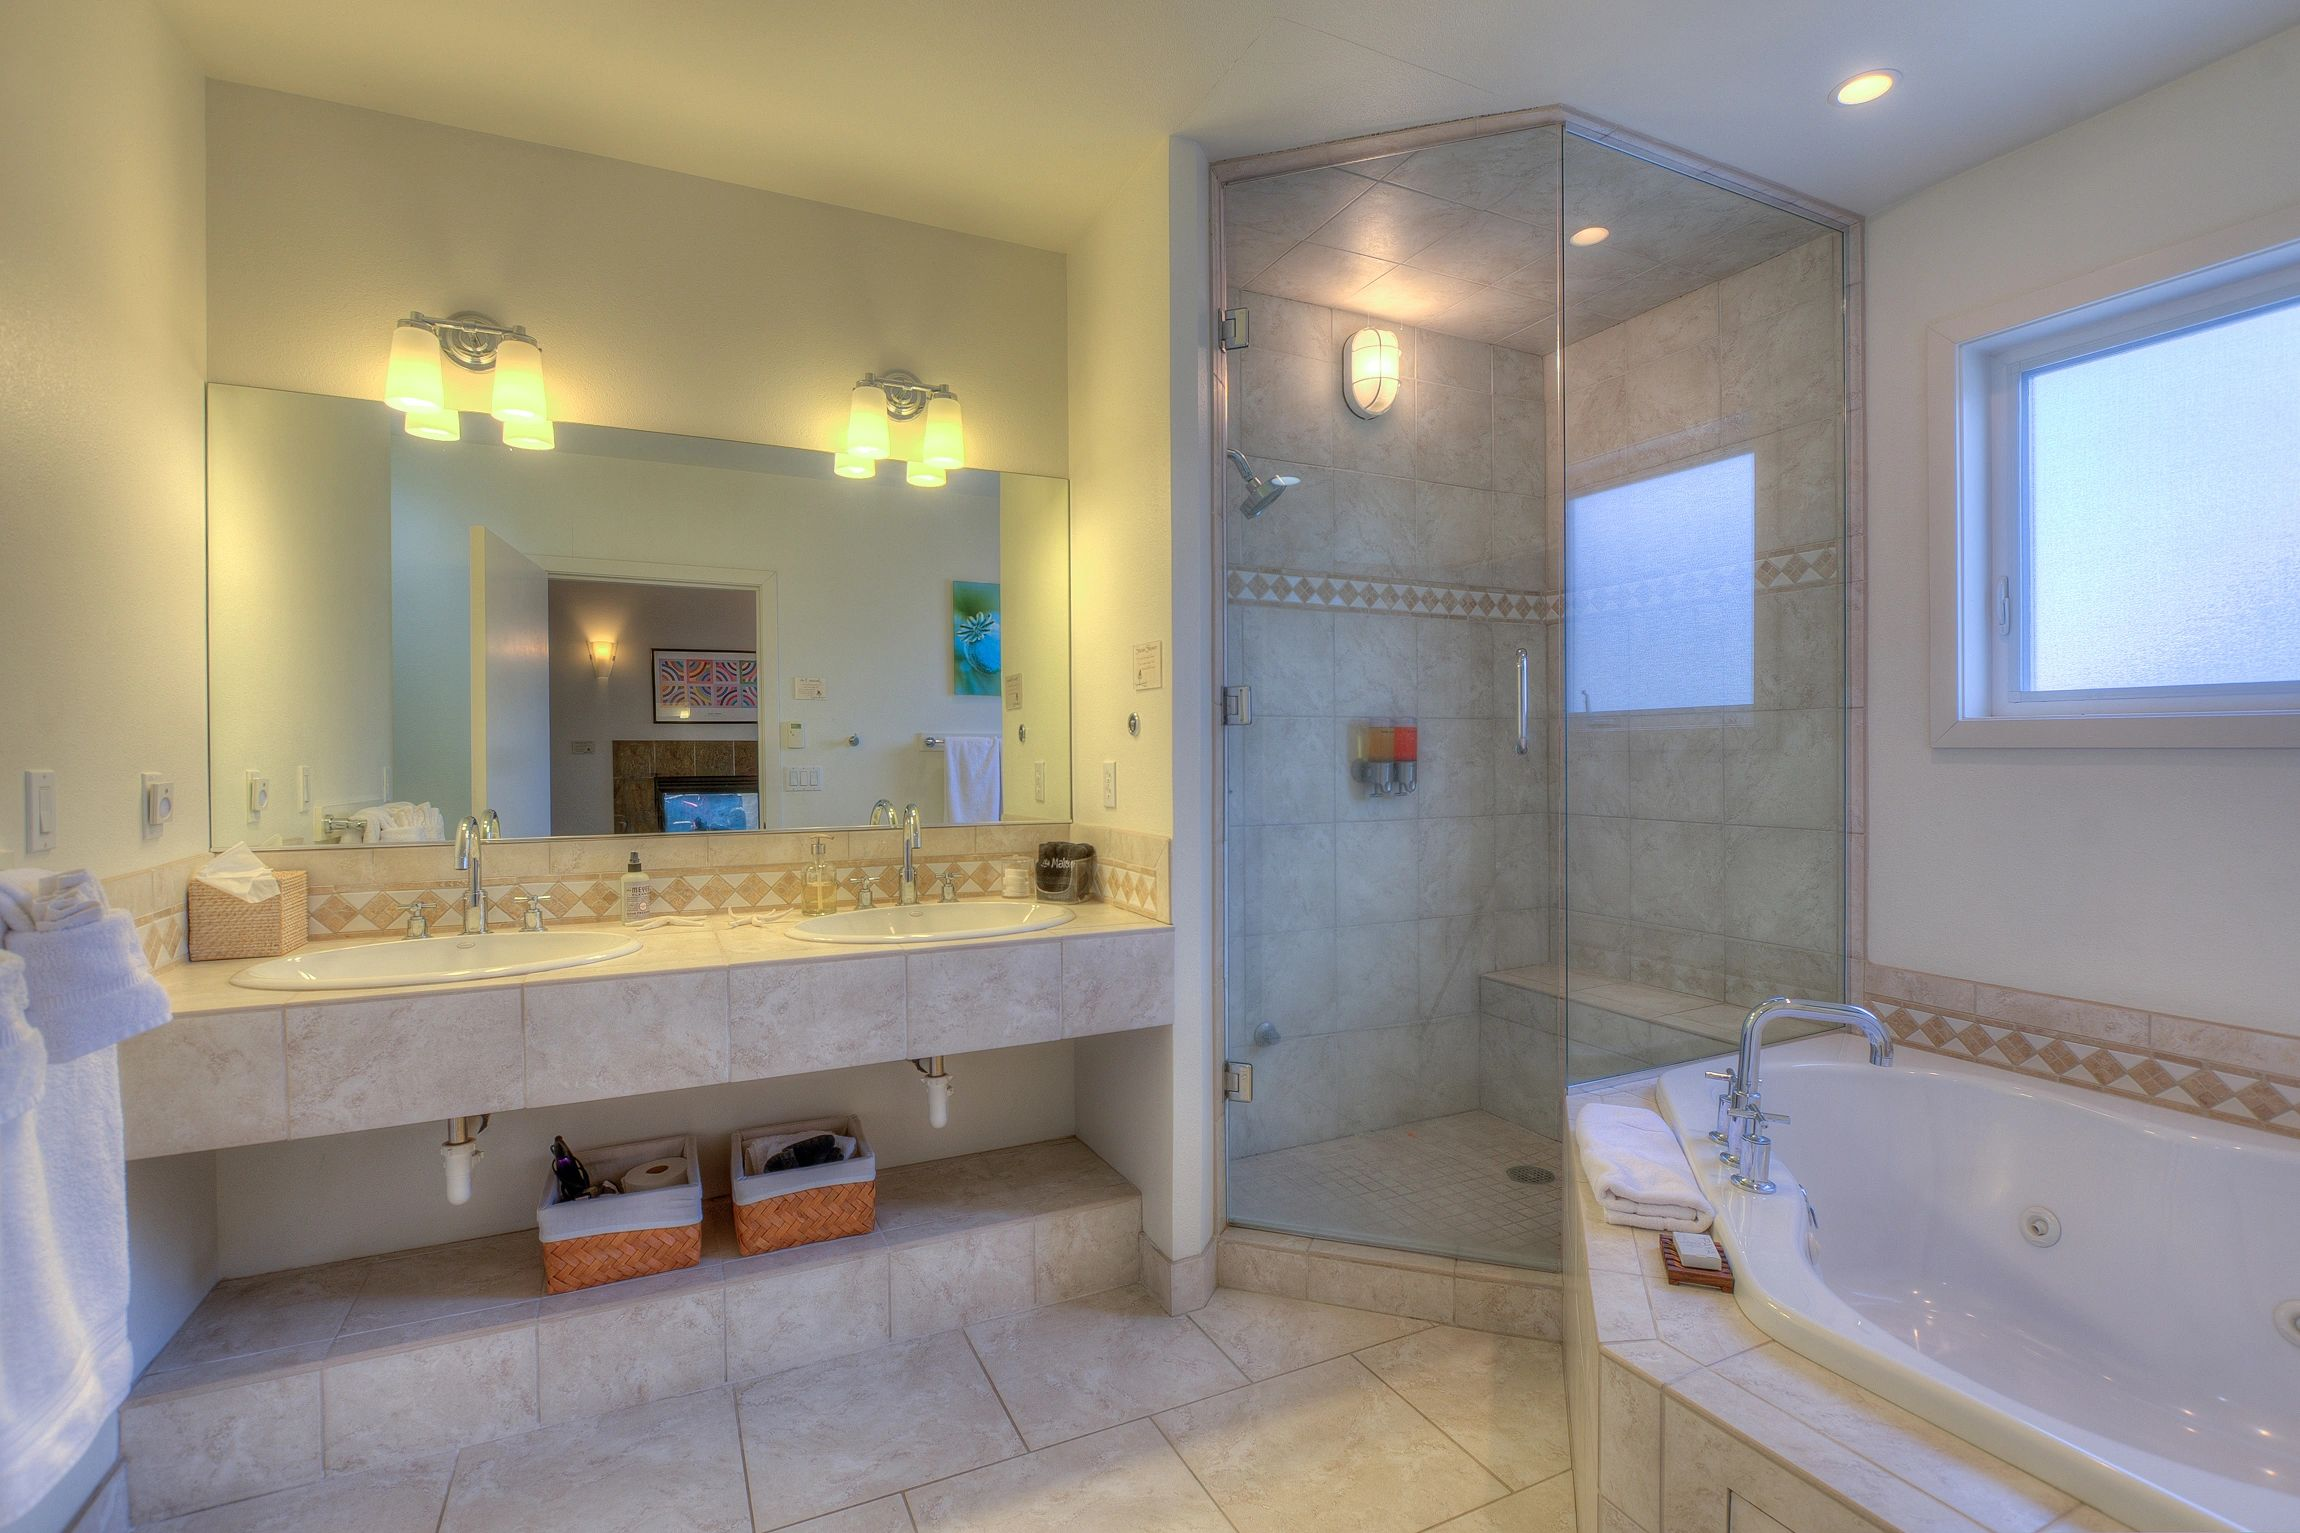 two-person corner jetted tub. Jacuzzi. Double sink. Luxury steam shower. Large master bathroom.